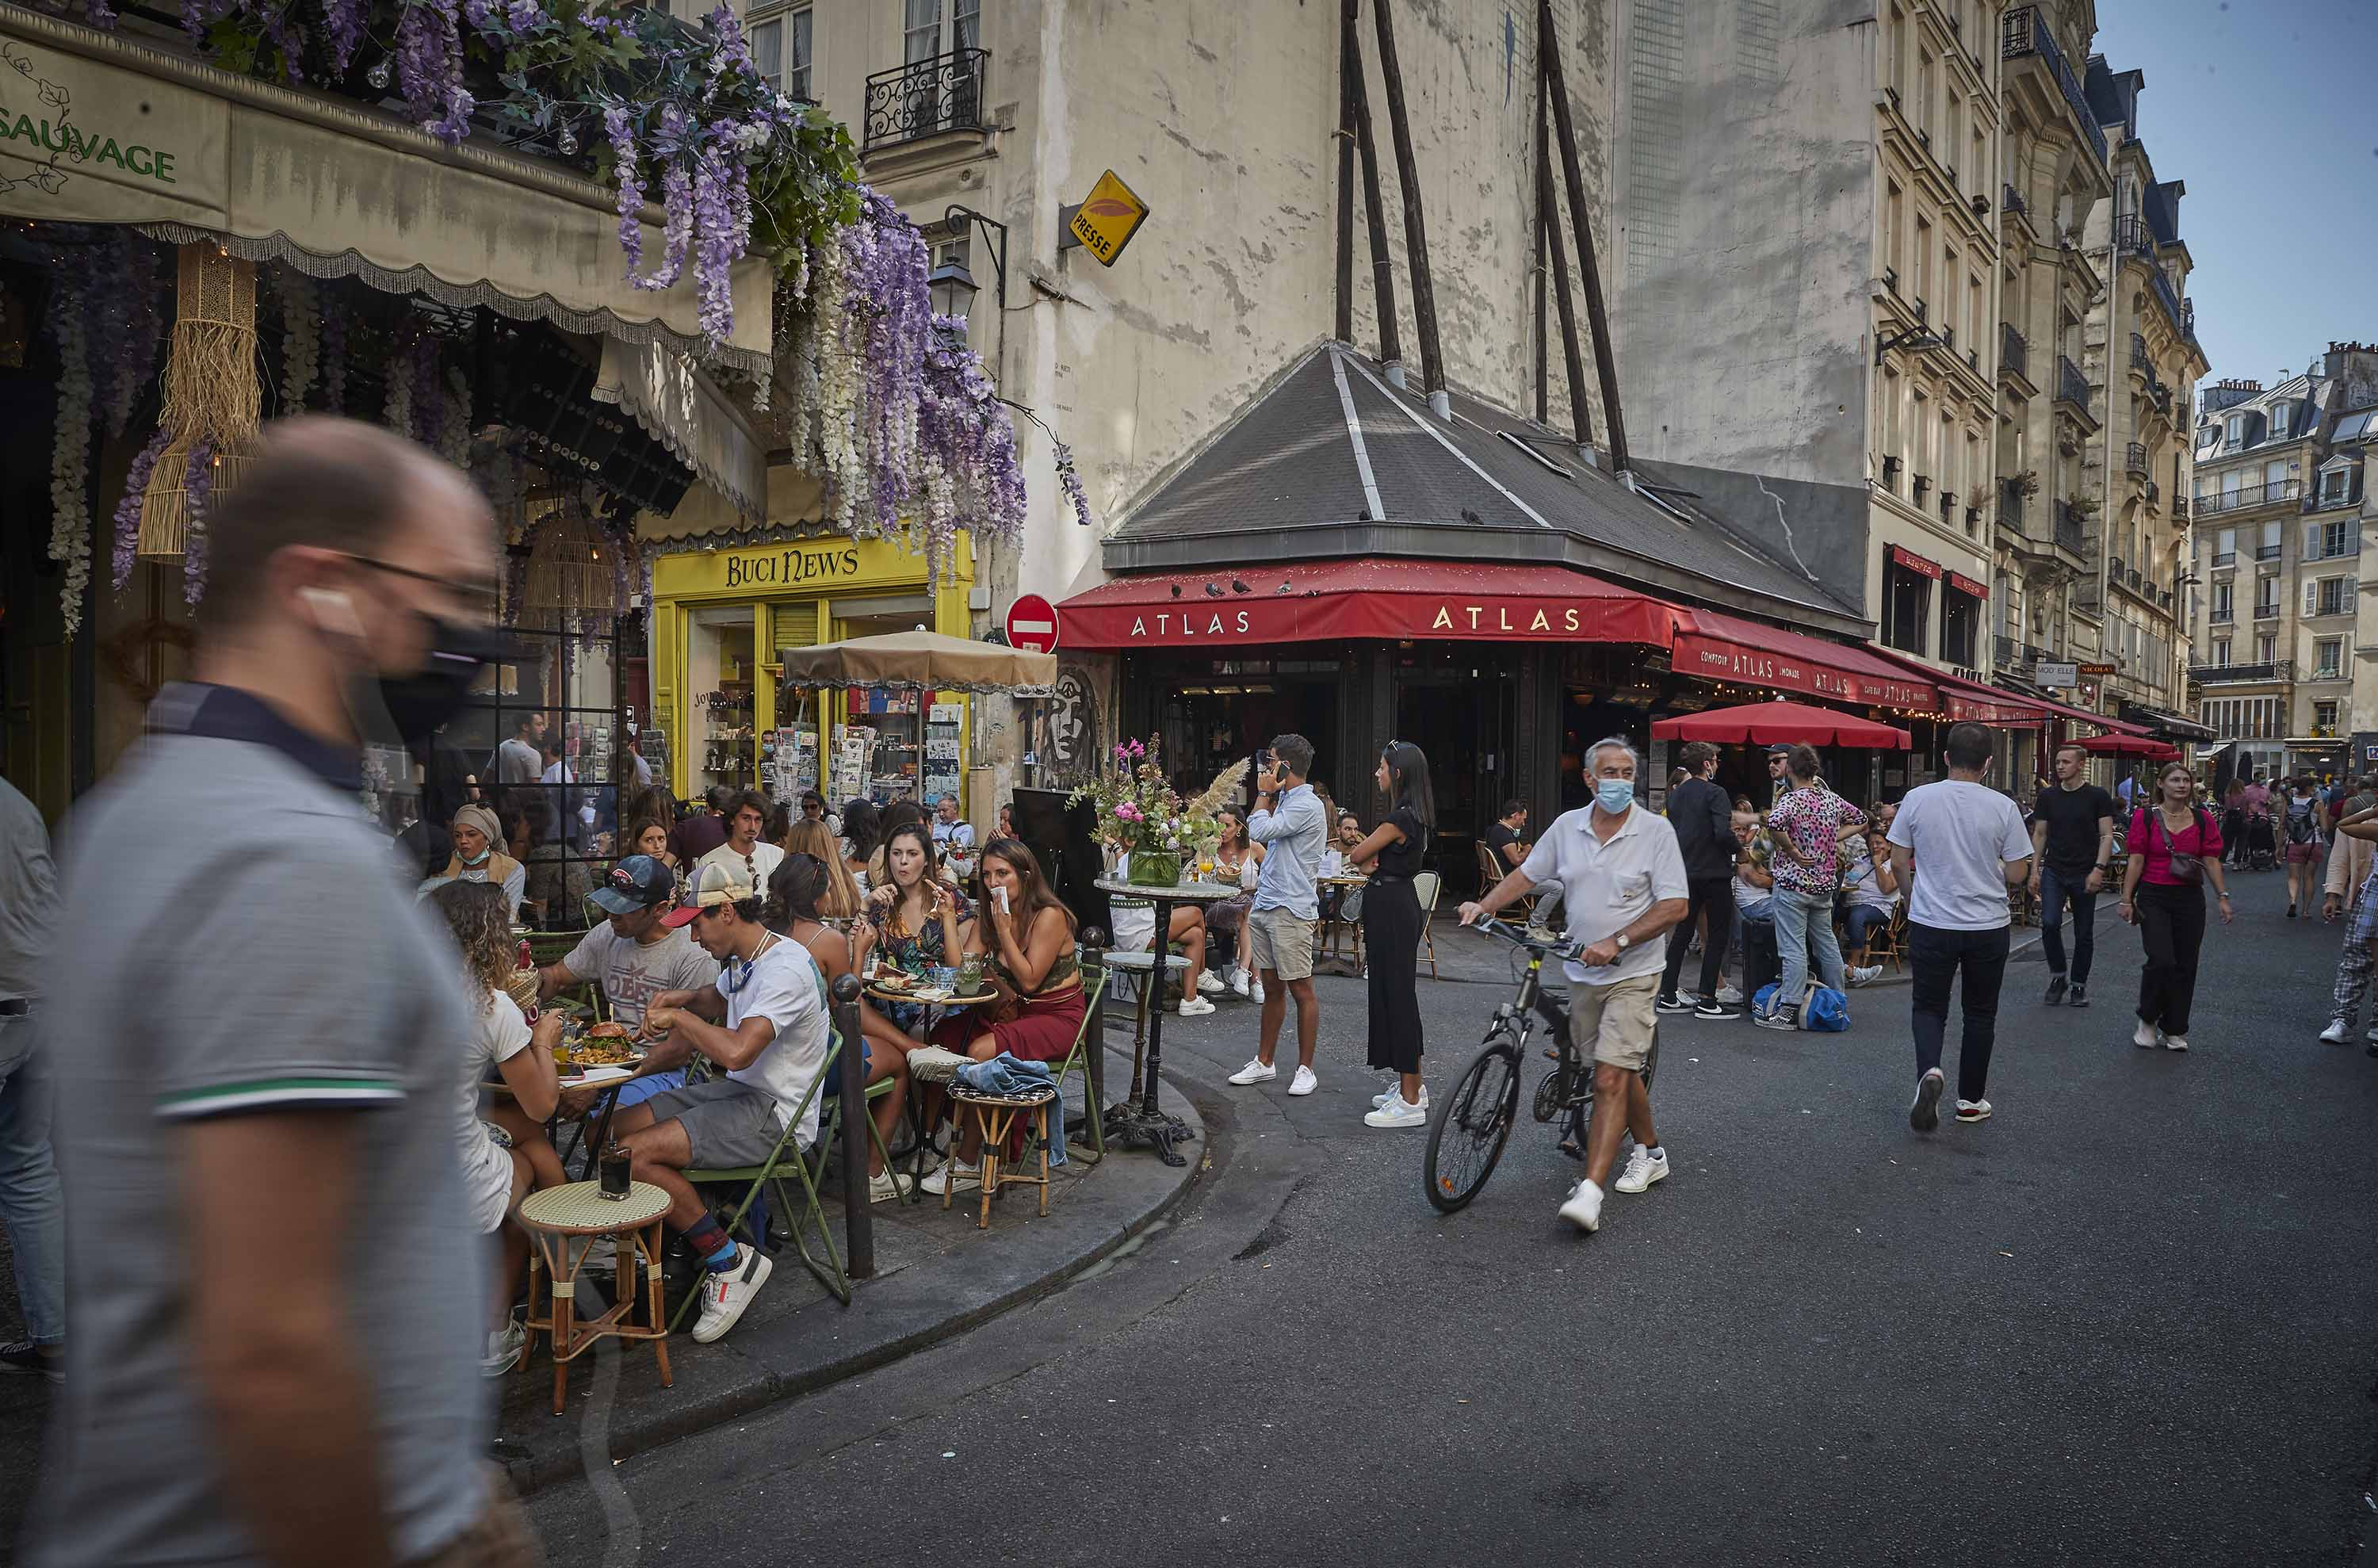 Parisians enjoy warm weather and outdoor seating at busy cafes and restaurants in Paris, on September 13.